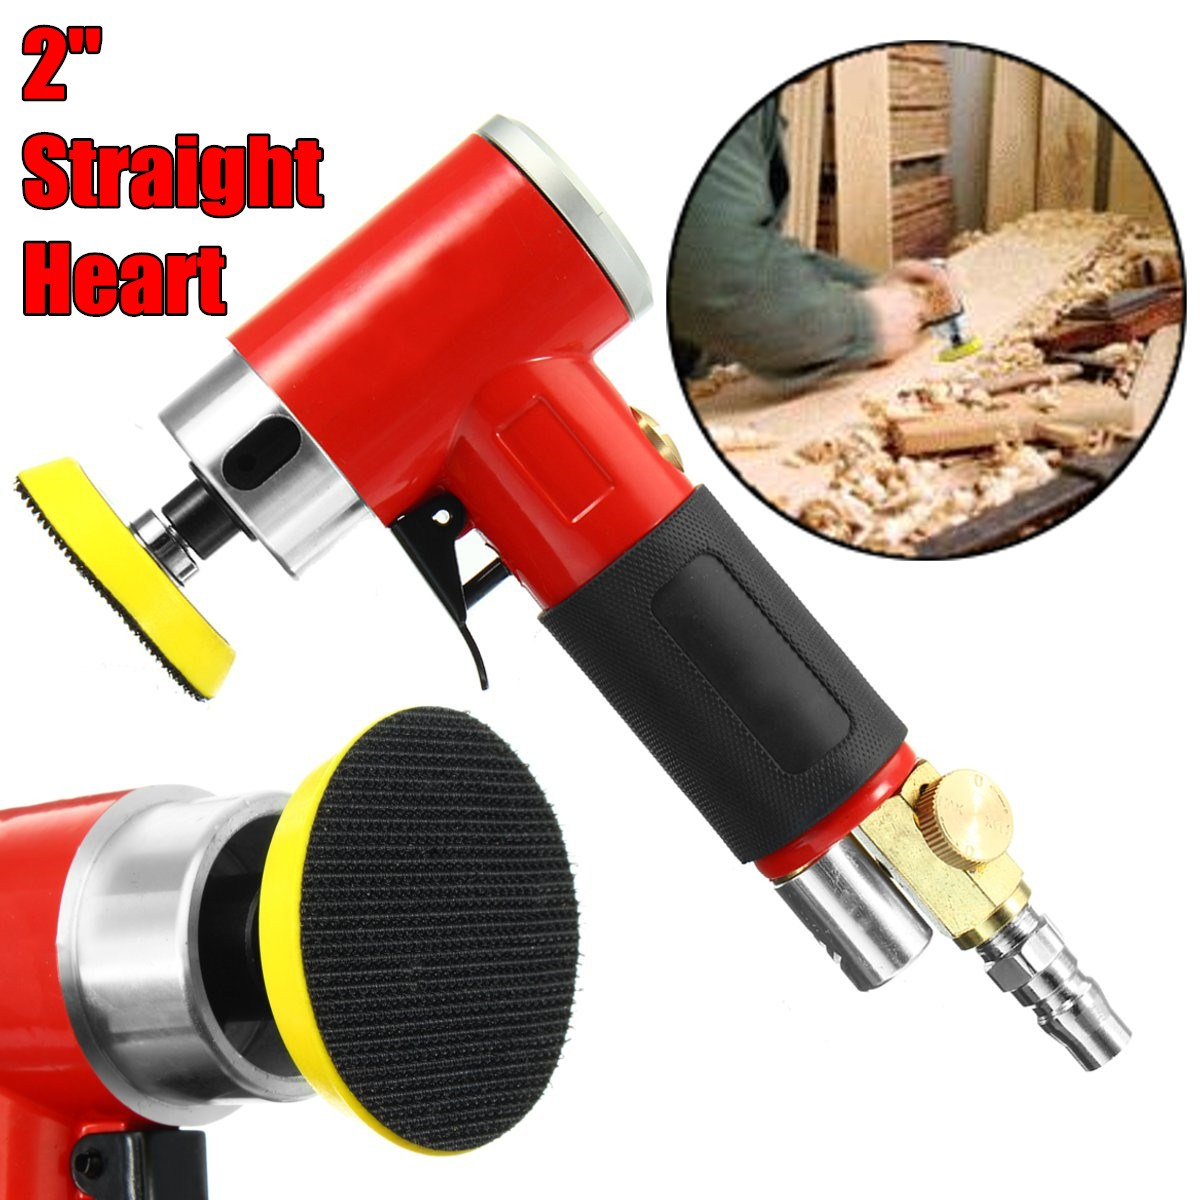 2 Inch Straight Heart High-speed Mini Pneumatic Sanding Machine with Push Switch and Sanding Pad for Polishing / Grinding 11 11 free shipping adhesive sander back pad sanding machine mat black white for makita 9035